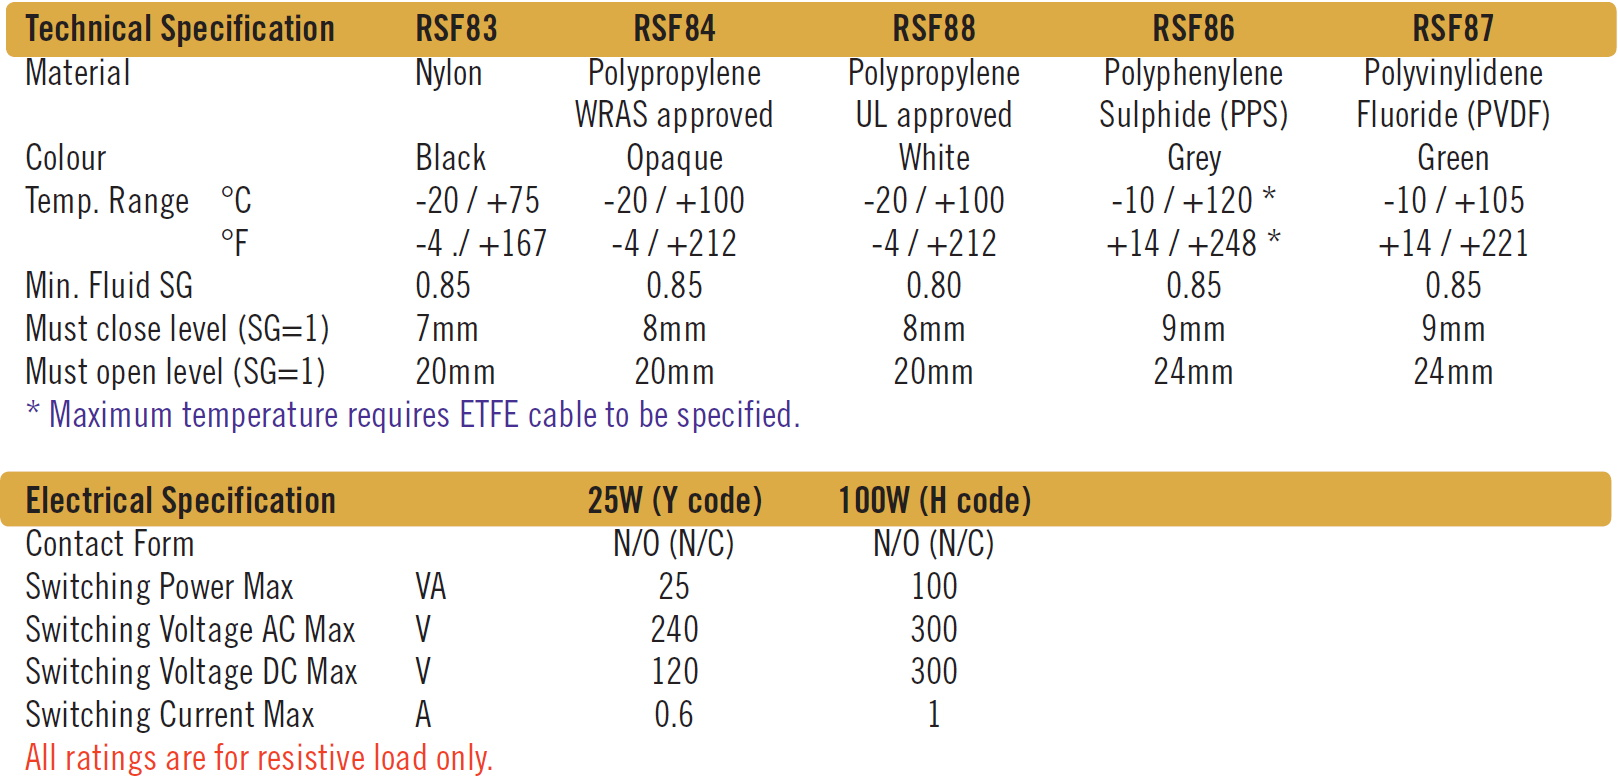 Cynergy3 RSF80 series specifications